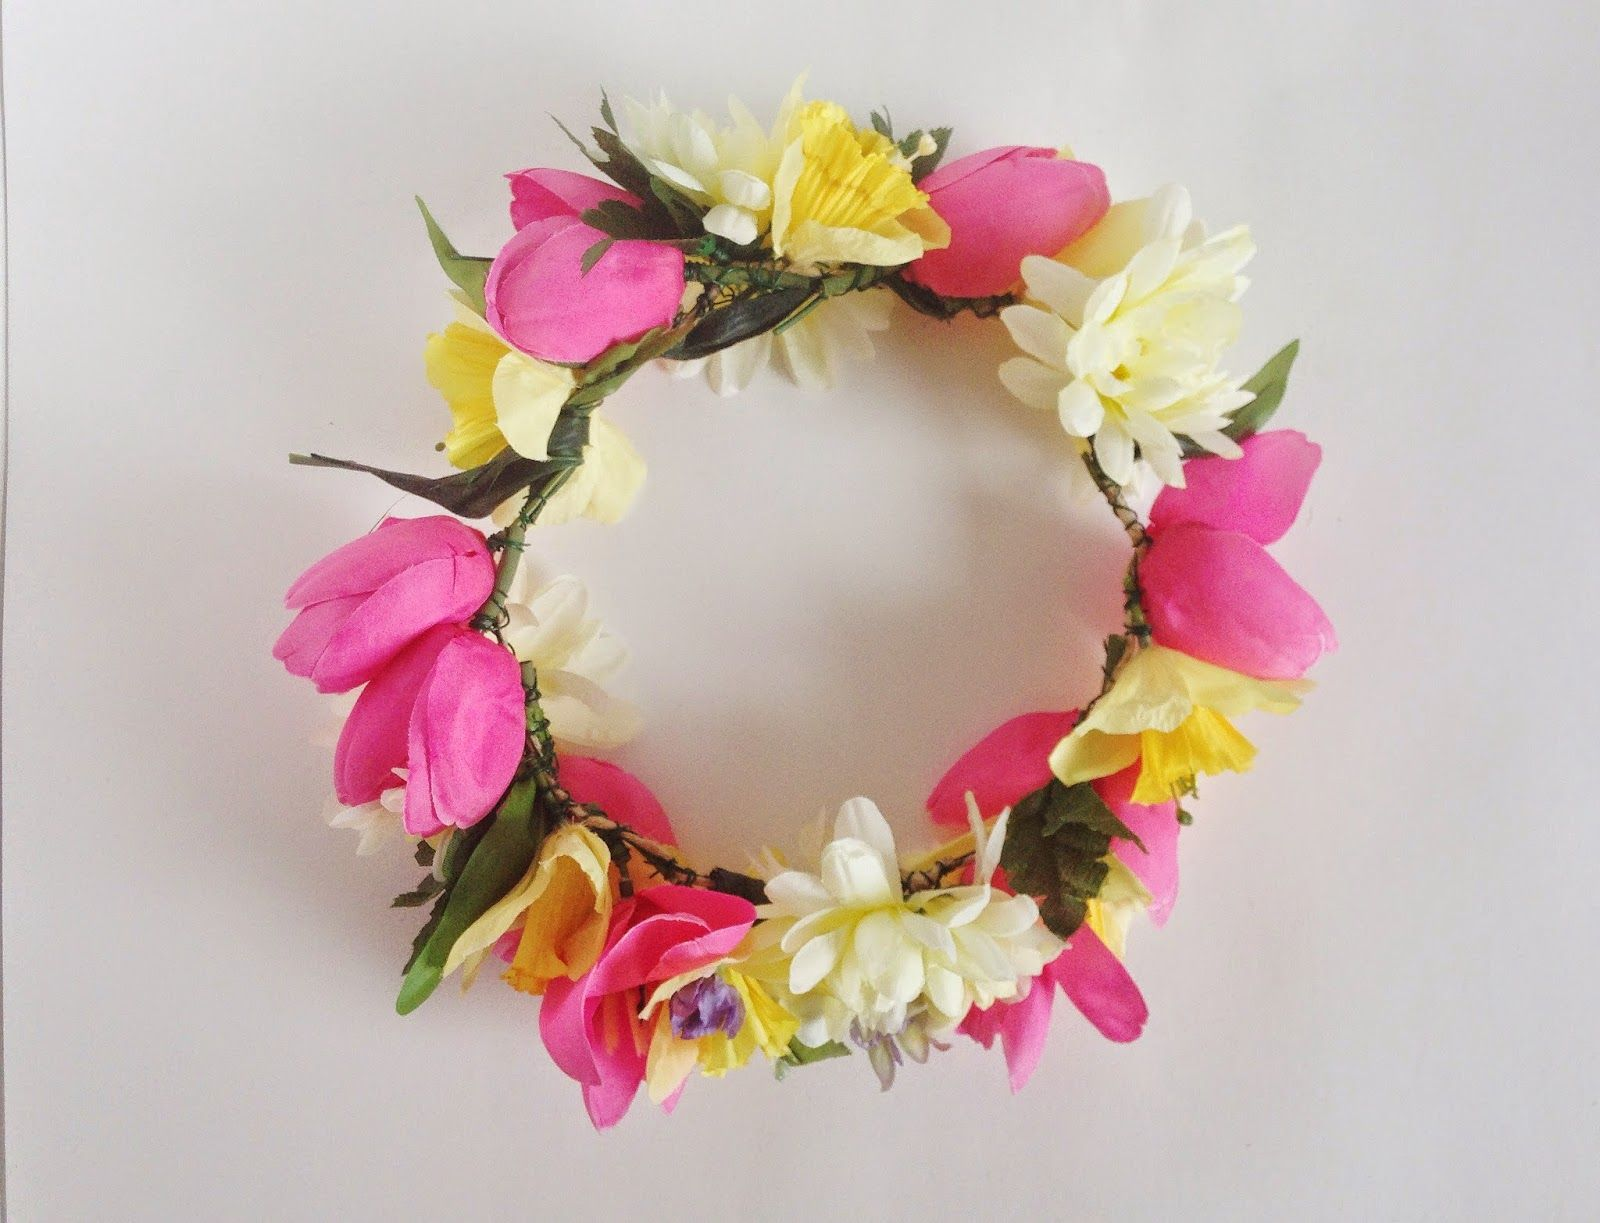 Hi friends ive been seeing diy flower crowns all over pinterest emily faith how to make fake flower crowns izmirmasajfo Choice Image